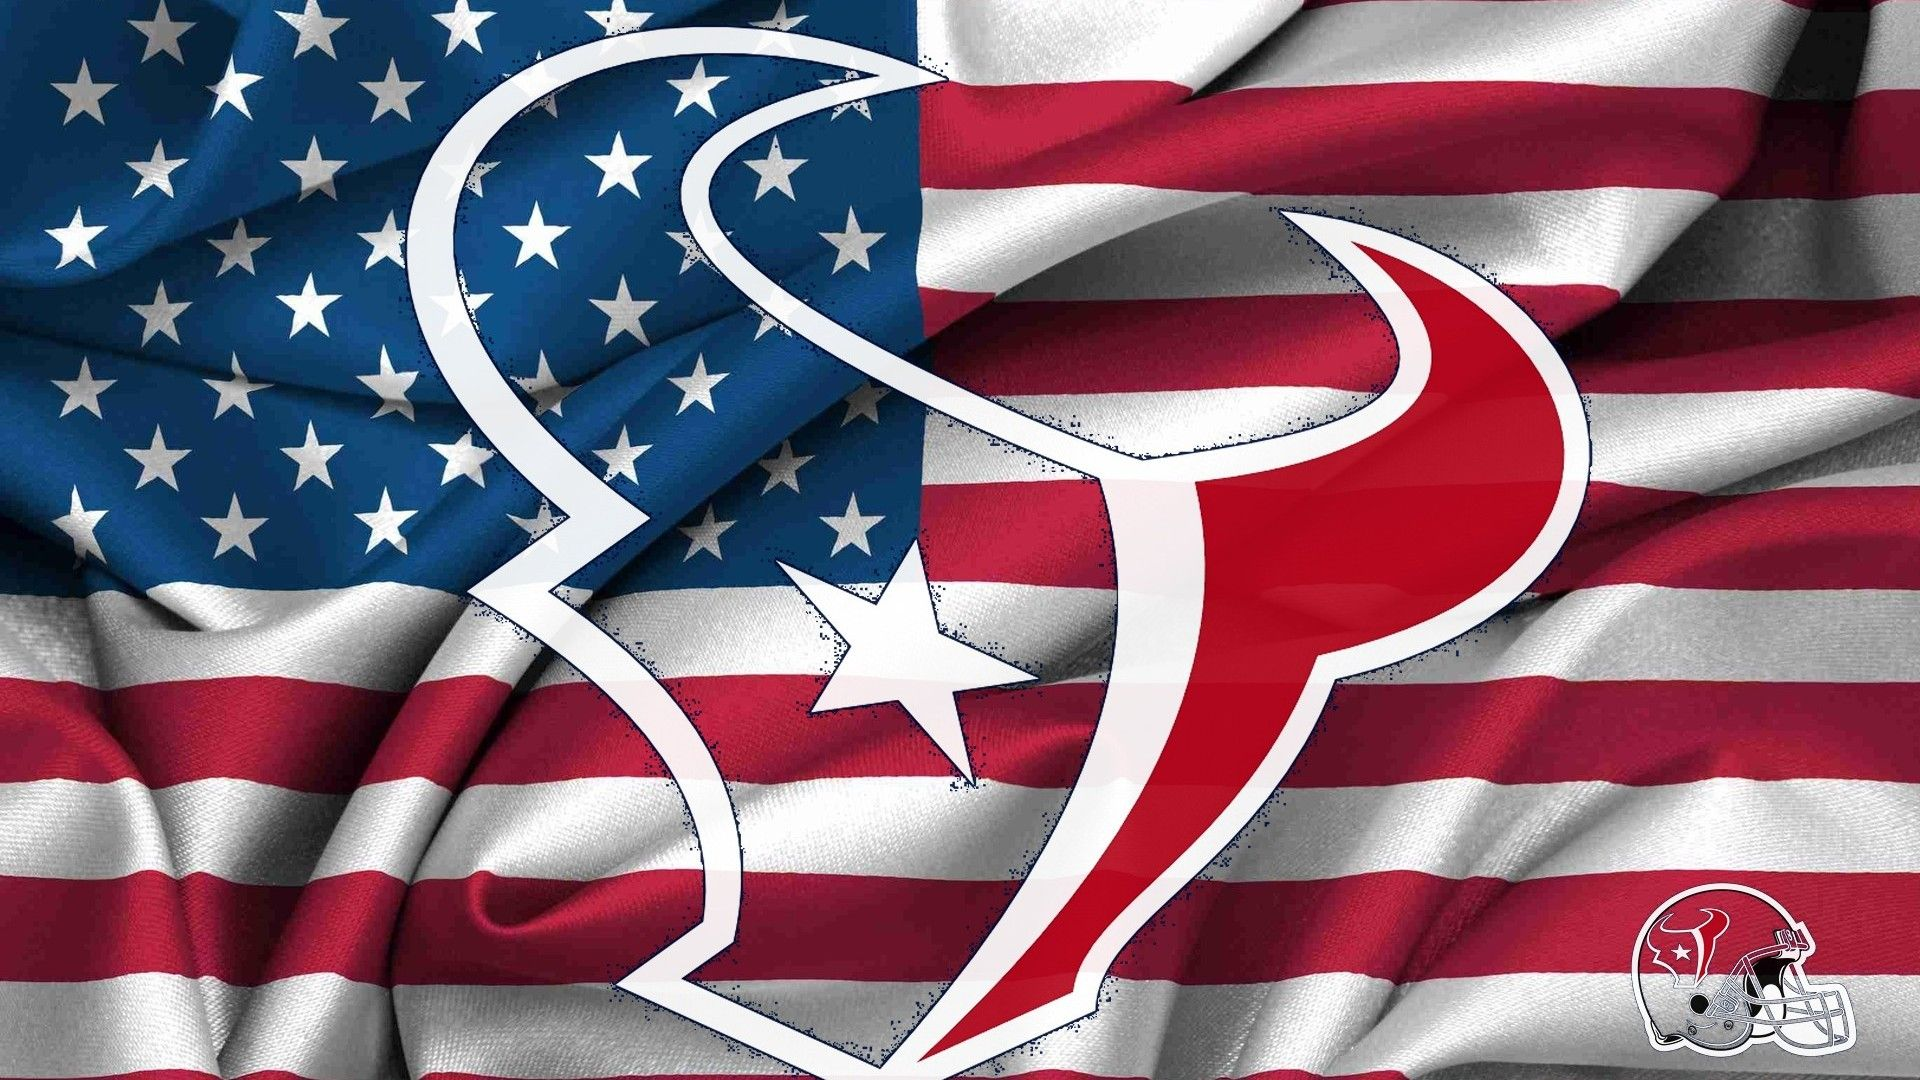 Houston Texans For PC Wallpaper Wallpapers Houston texans logo 1920x1080